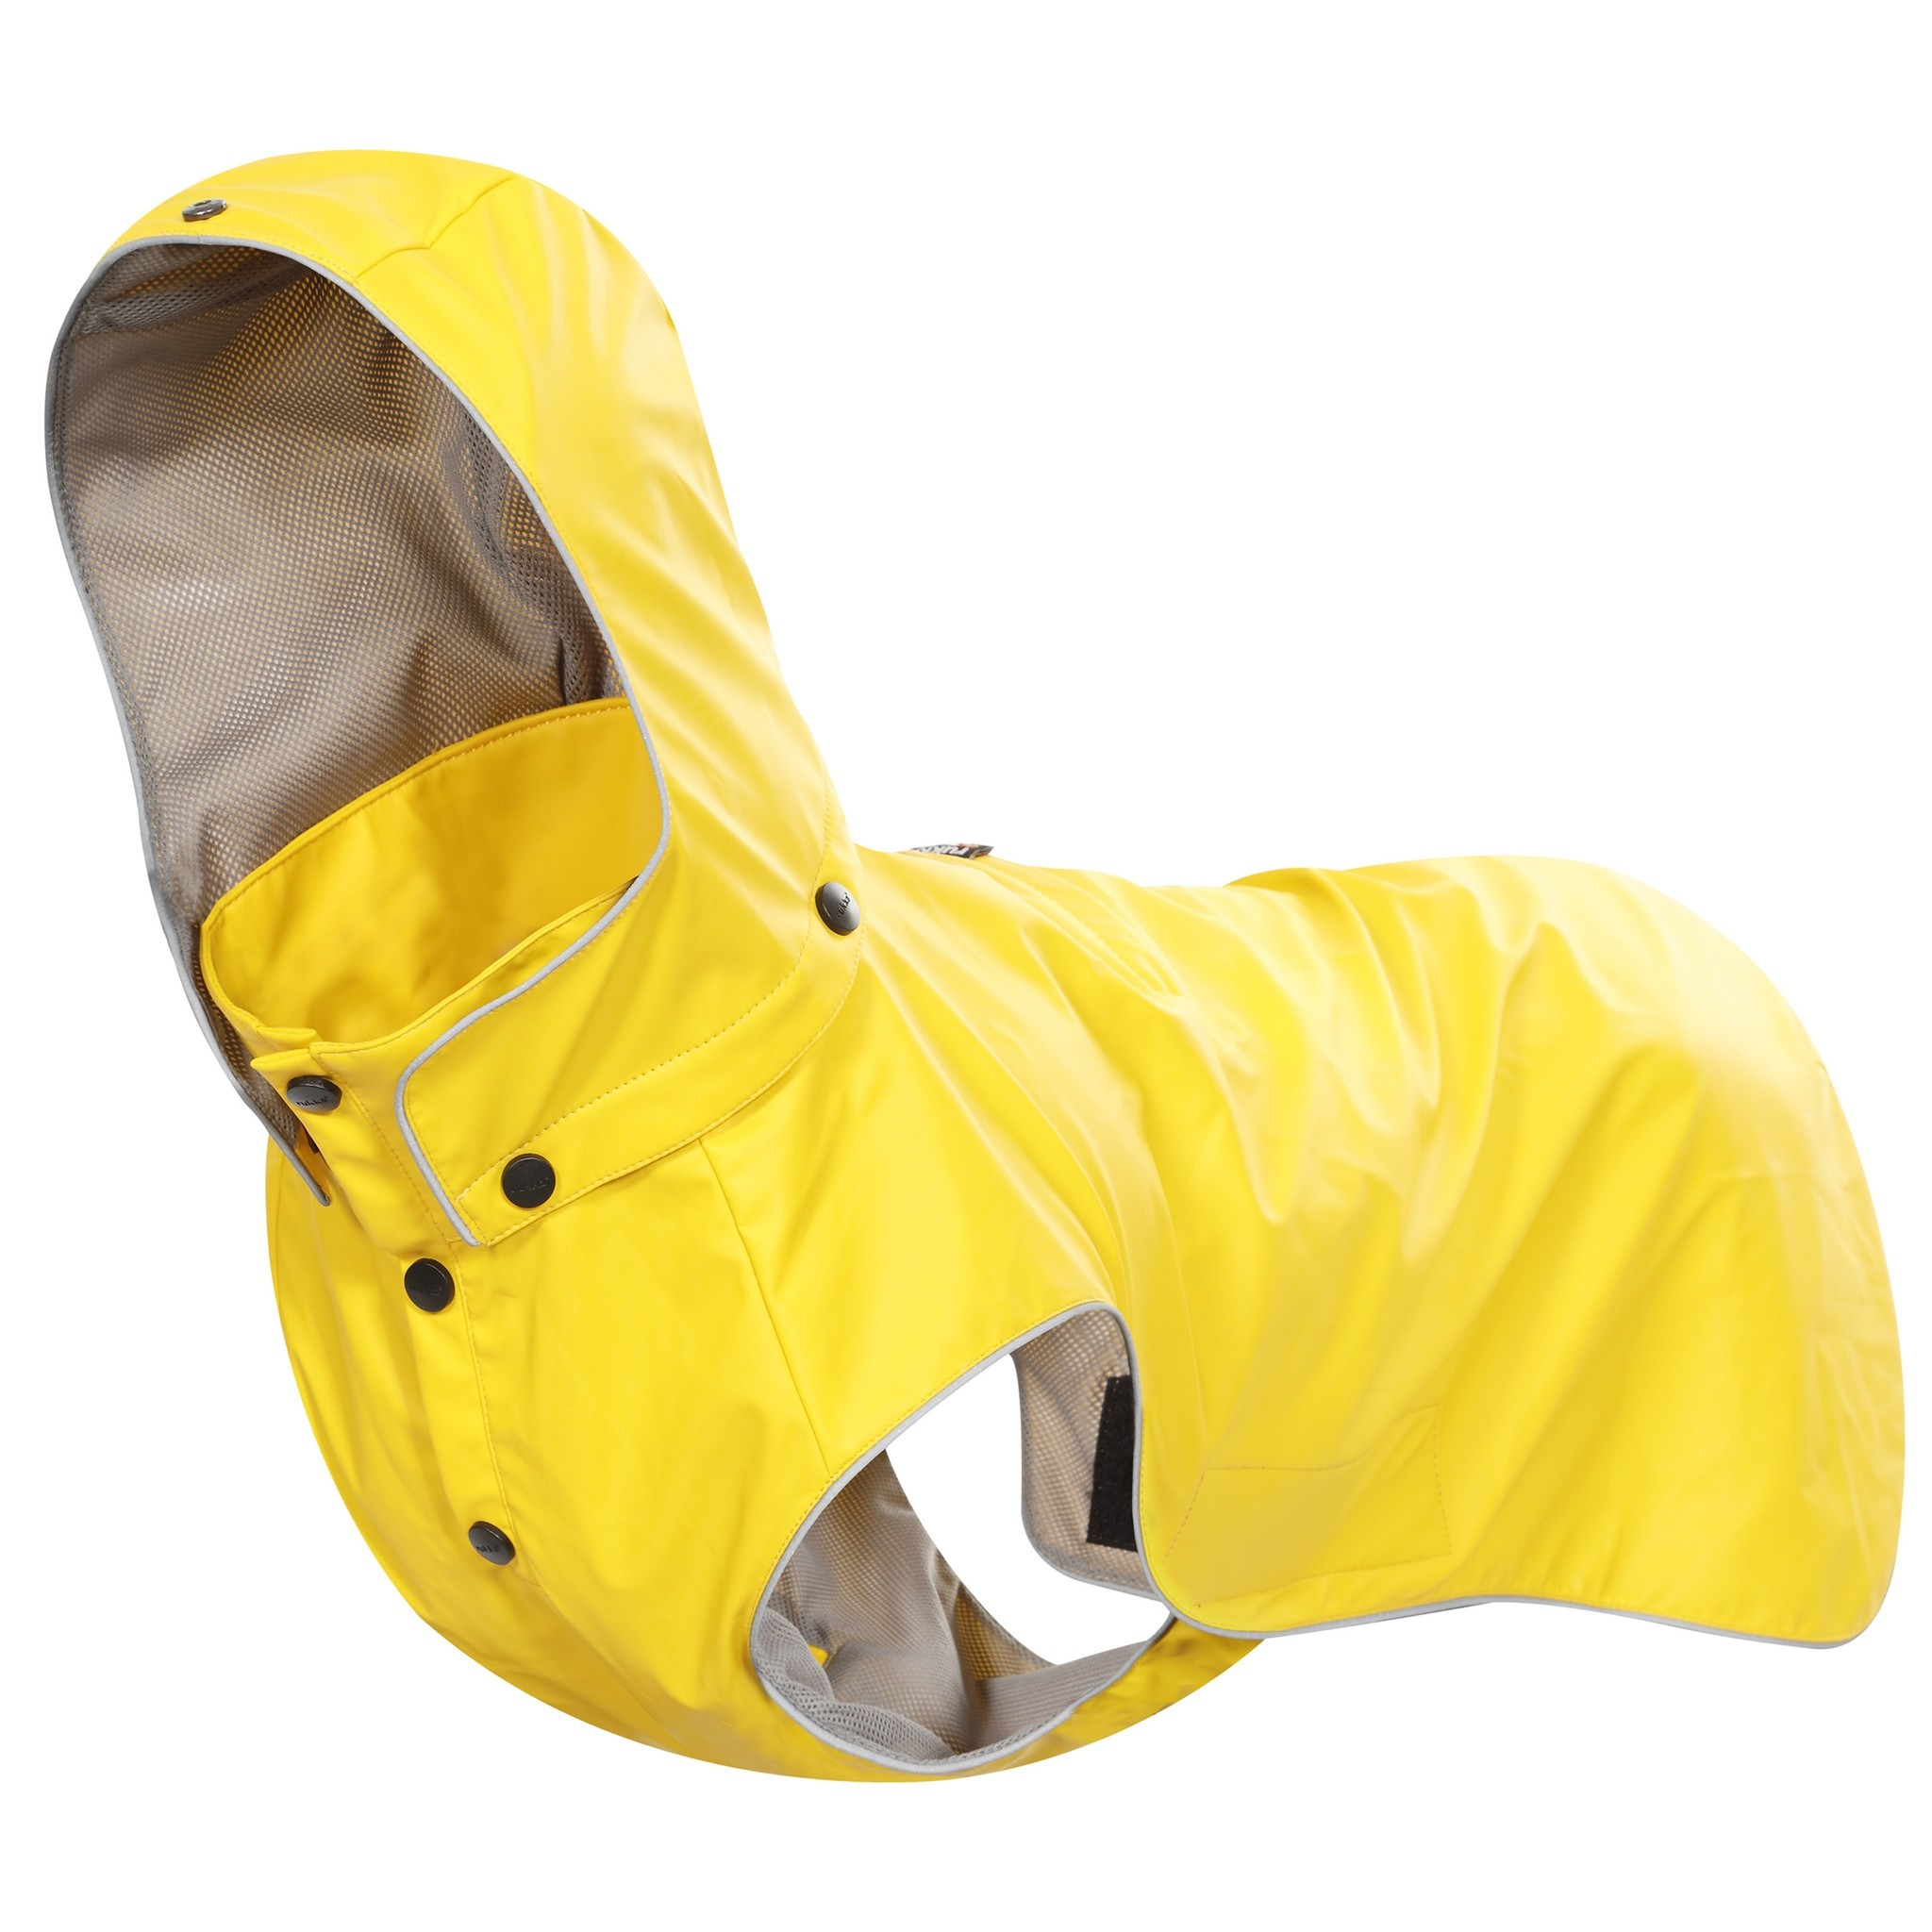 RukkaPets Stream Raincoat